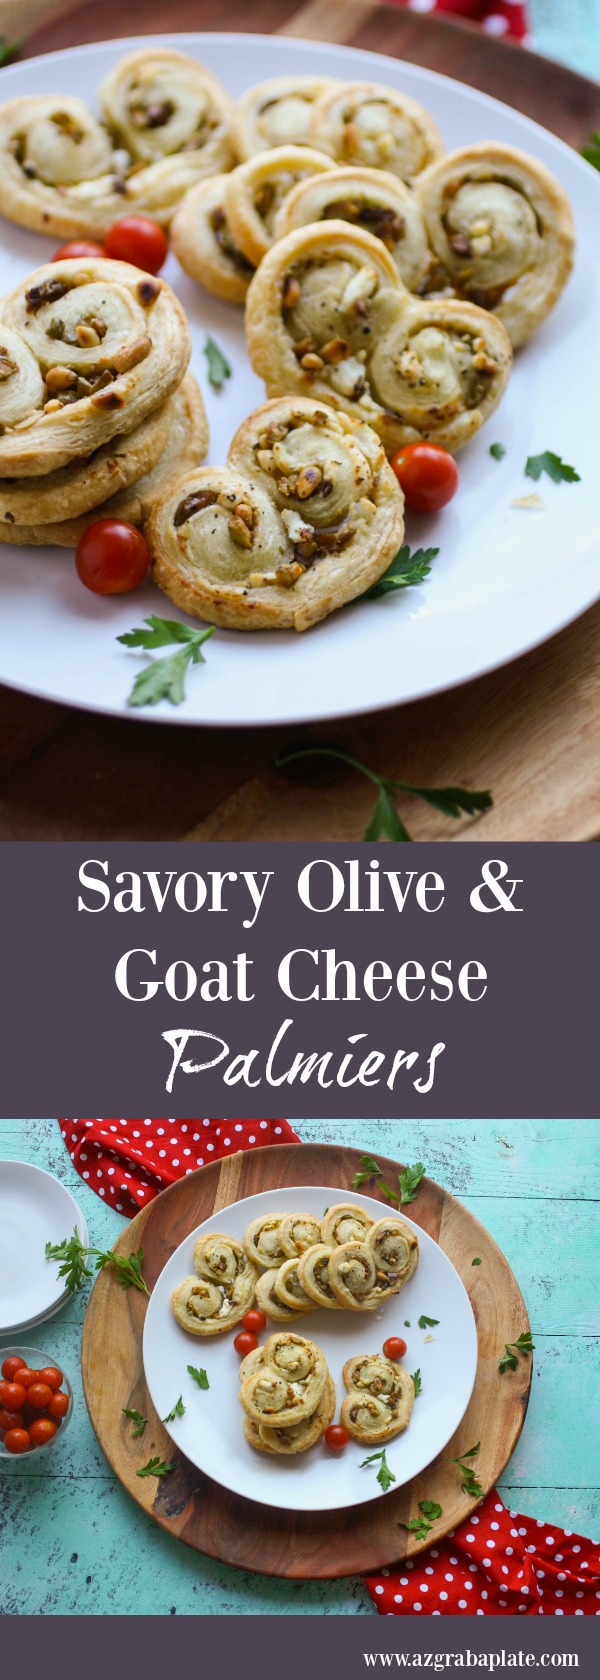 Savory Olive and Goat Cheese Palmiers are a fun appetizer for your next party. They're big on flavor and so easy to make, too!